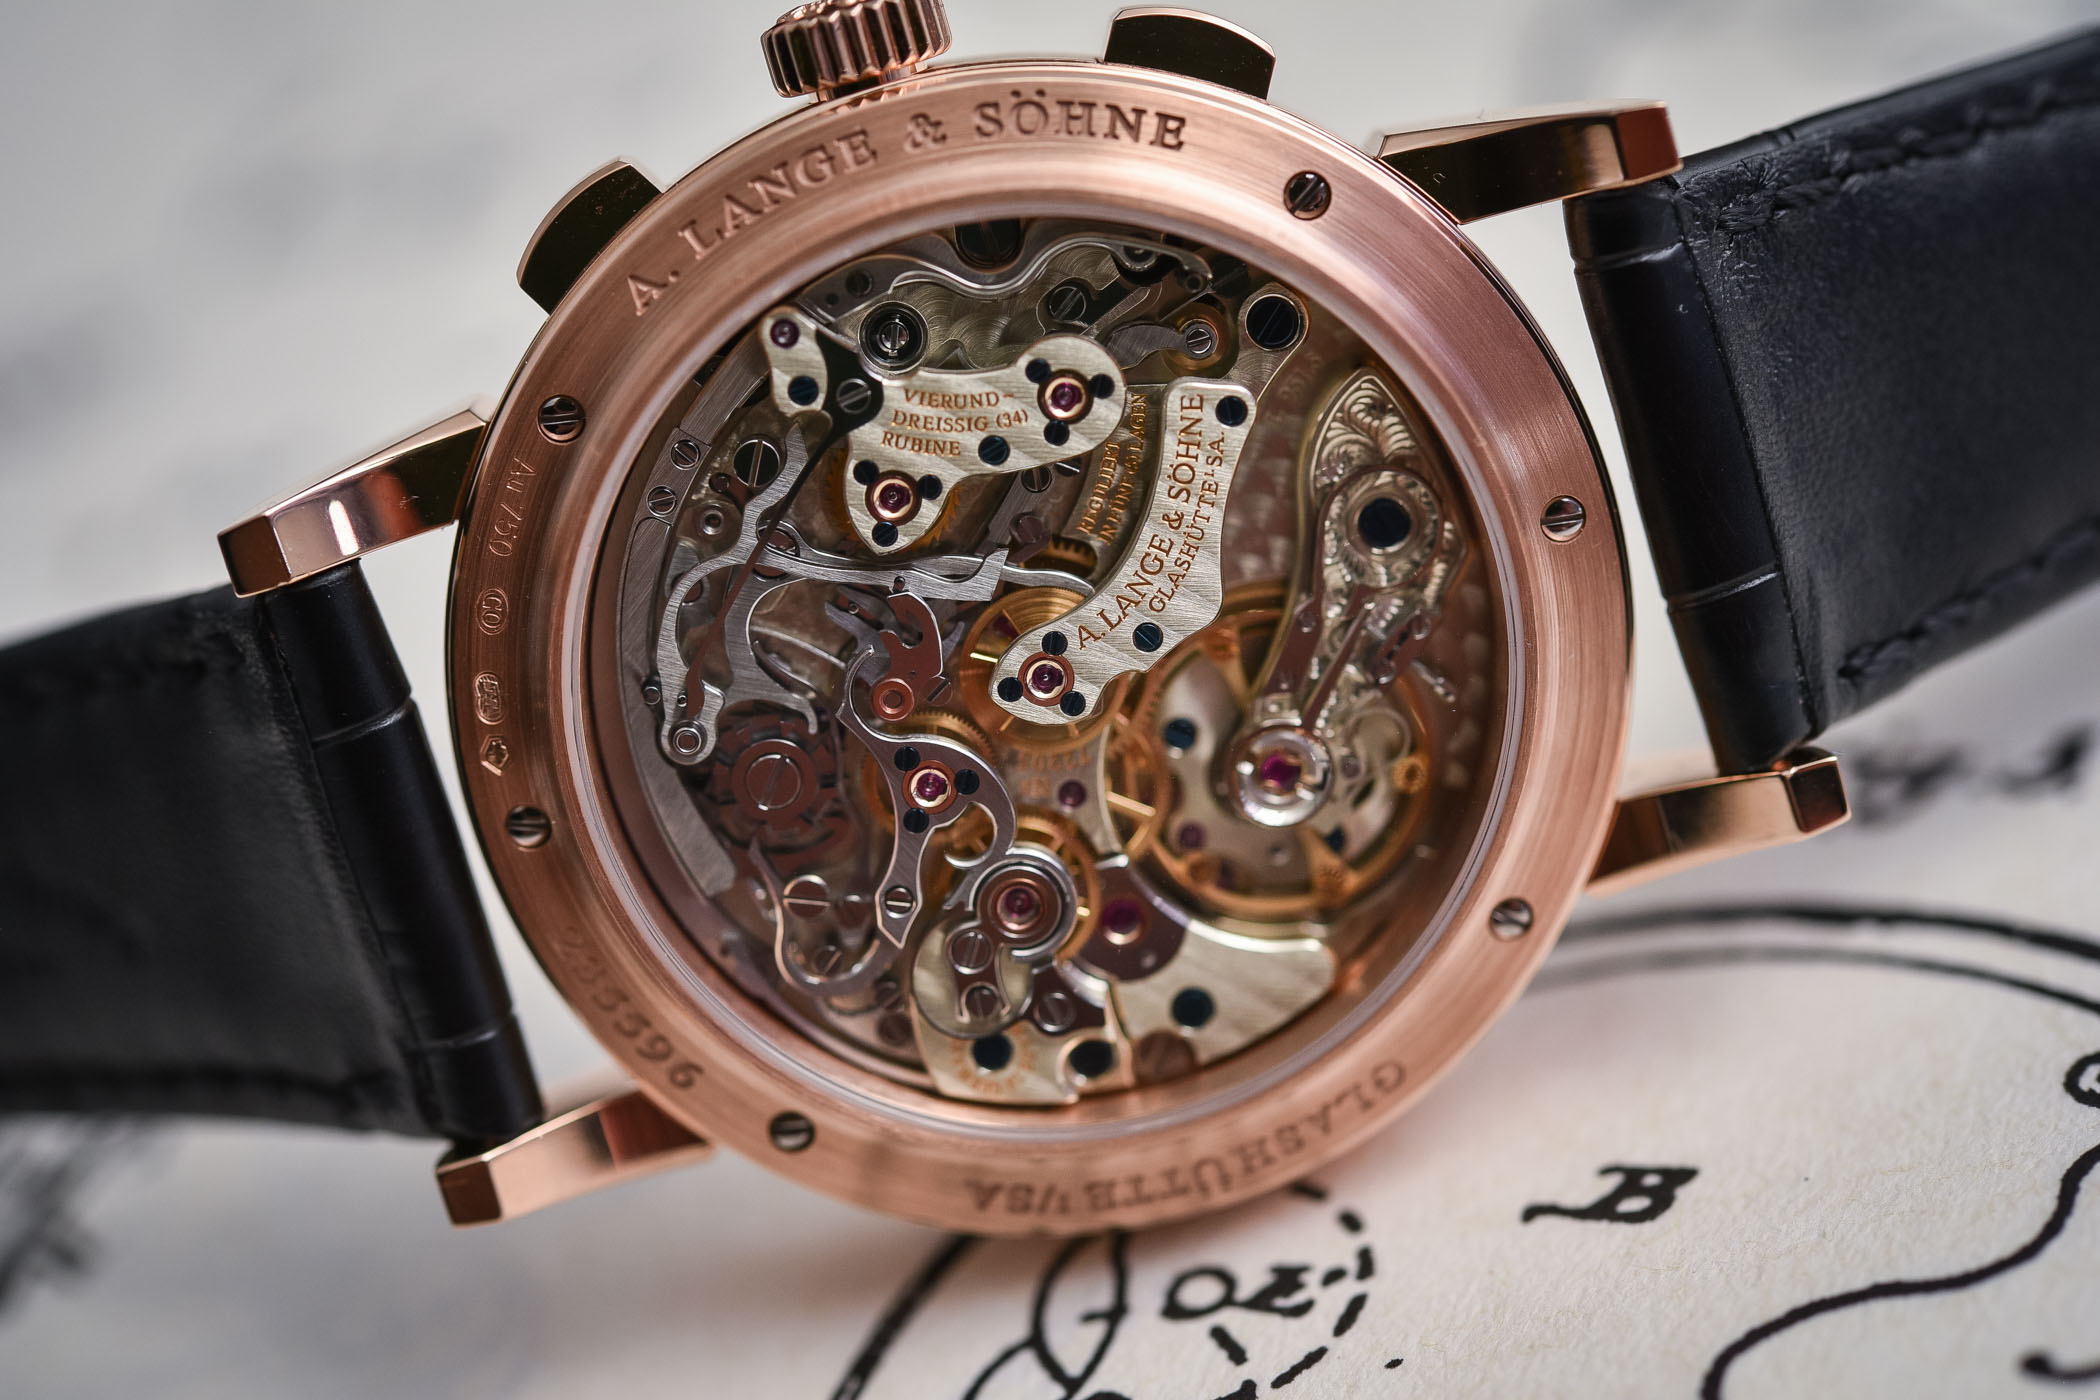 A Lange Sohne 1815 Chronograph Black Dial Rose Gold - SIHH 2018